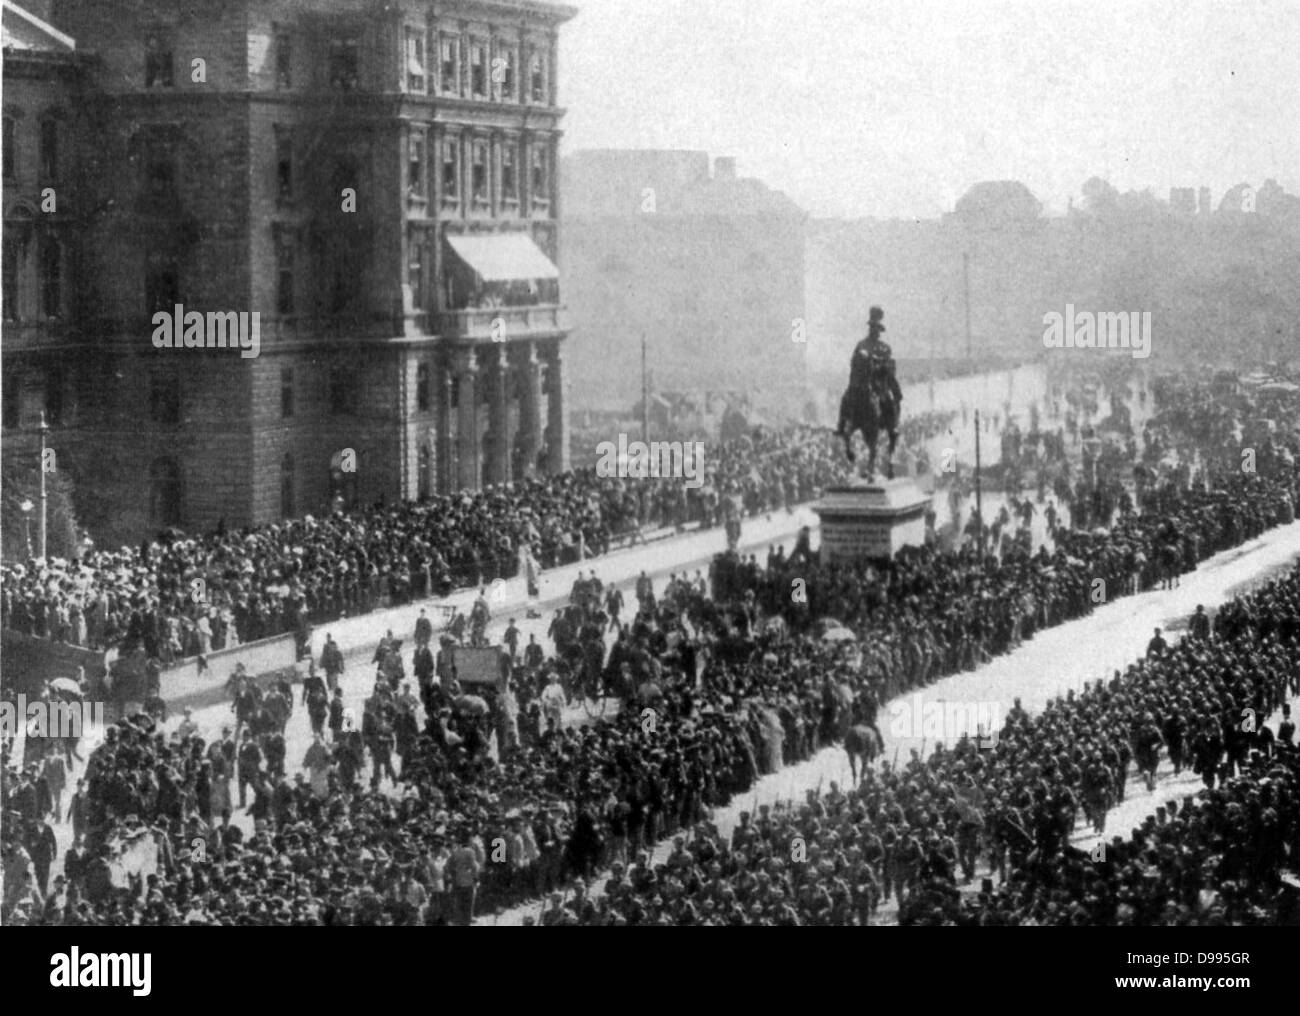 Austro-Hungarian moblization 1914: column of troops marching through Vienna watched by enthusiastic crowds. - Stock Image